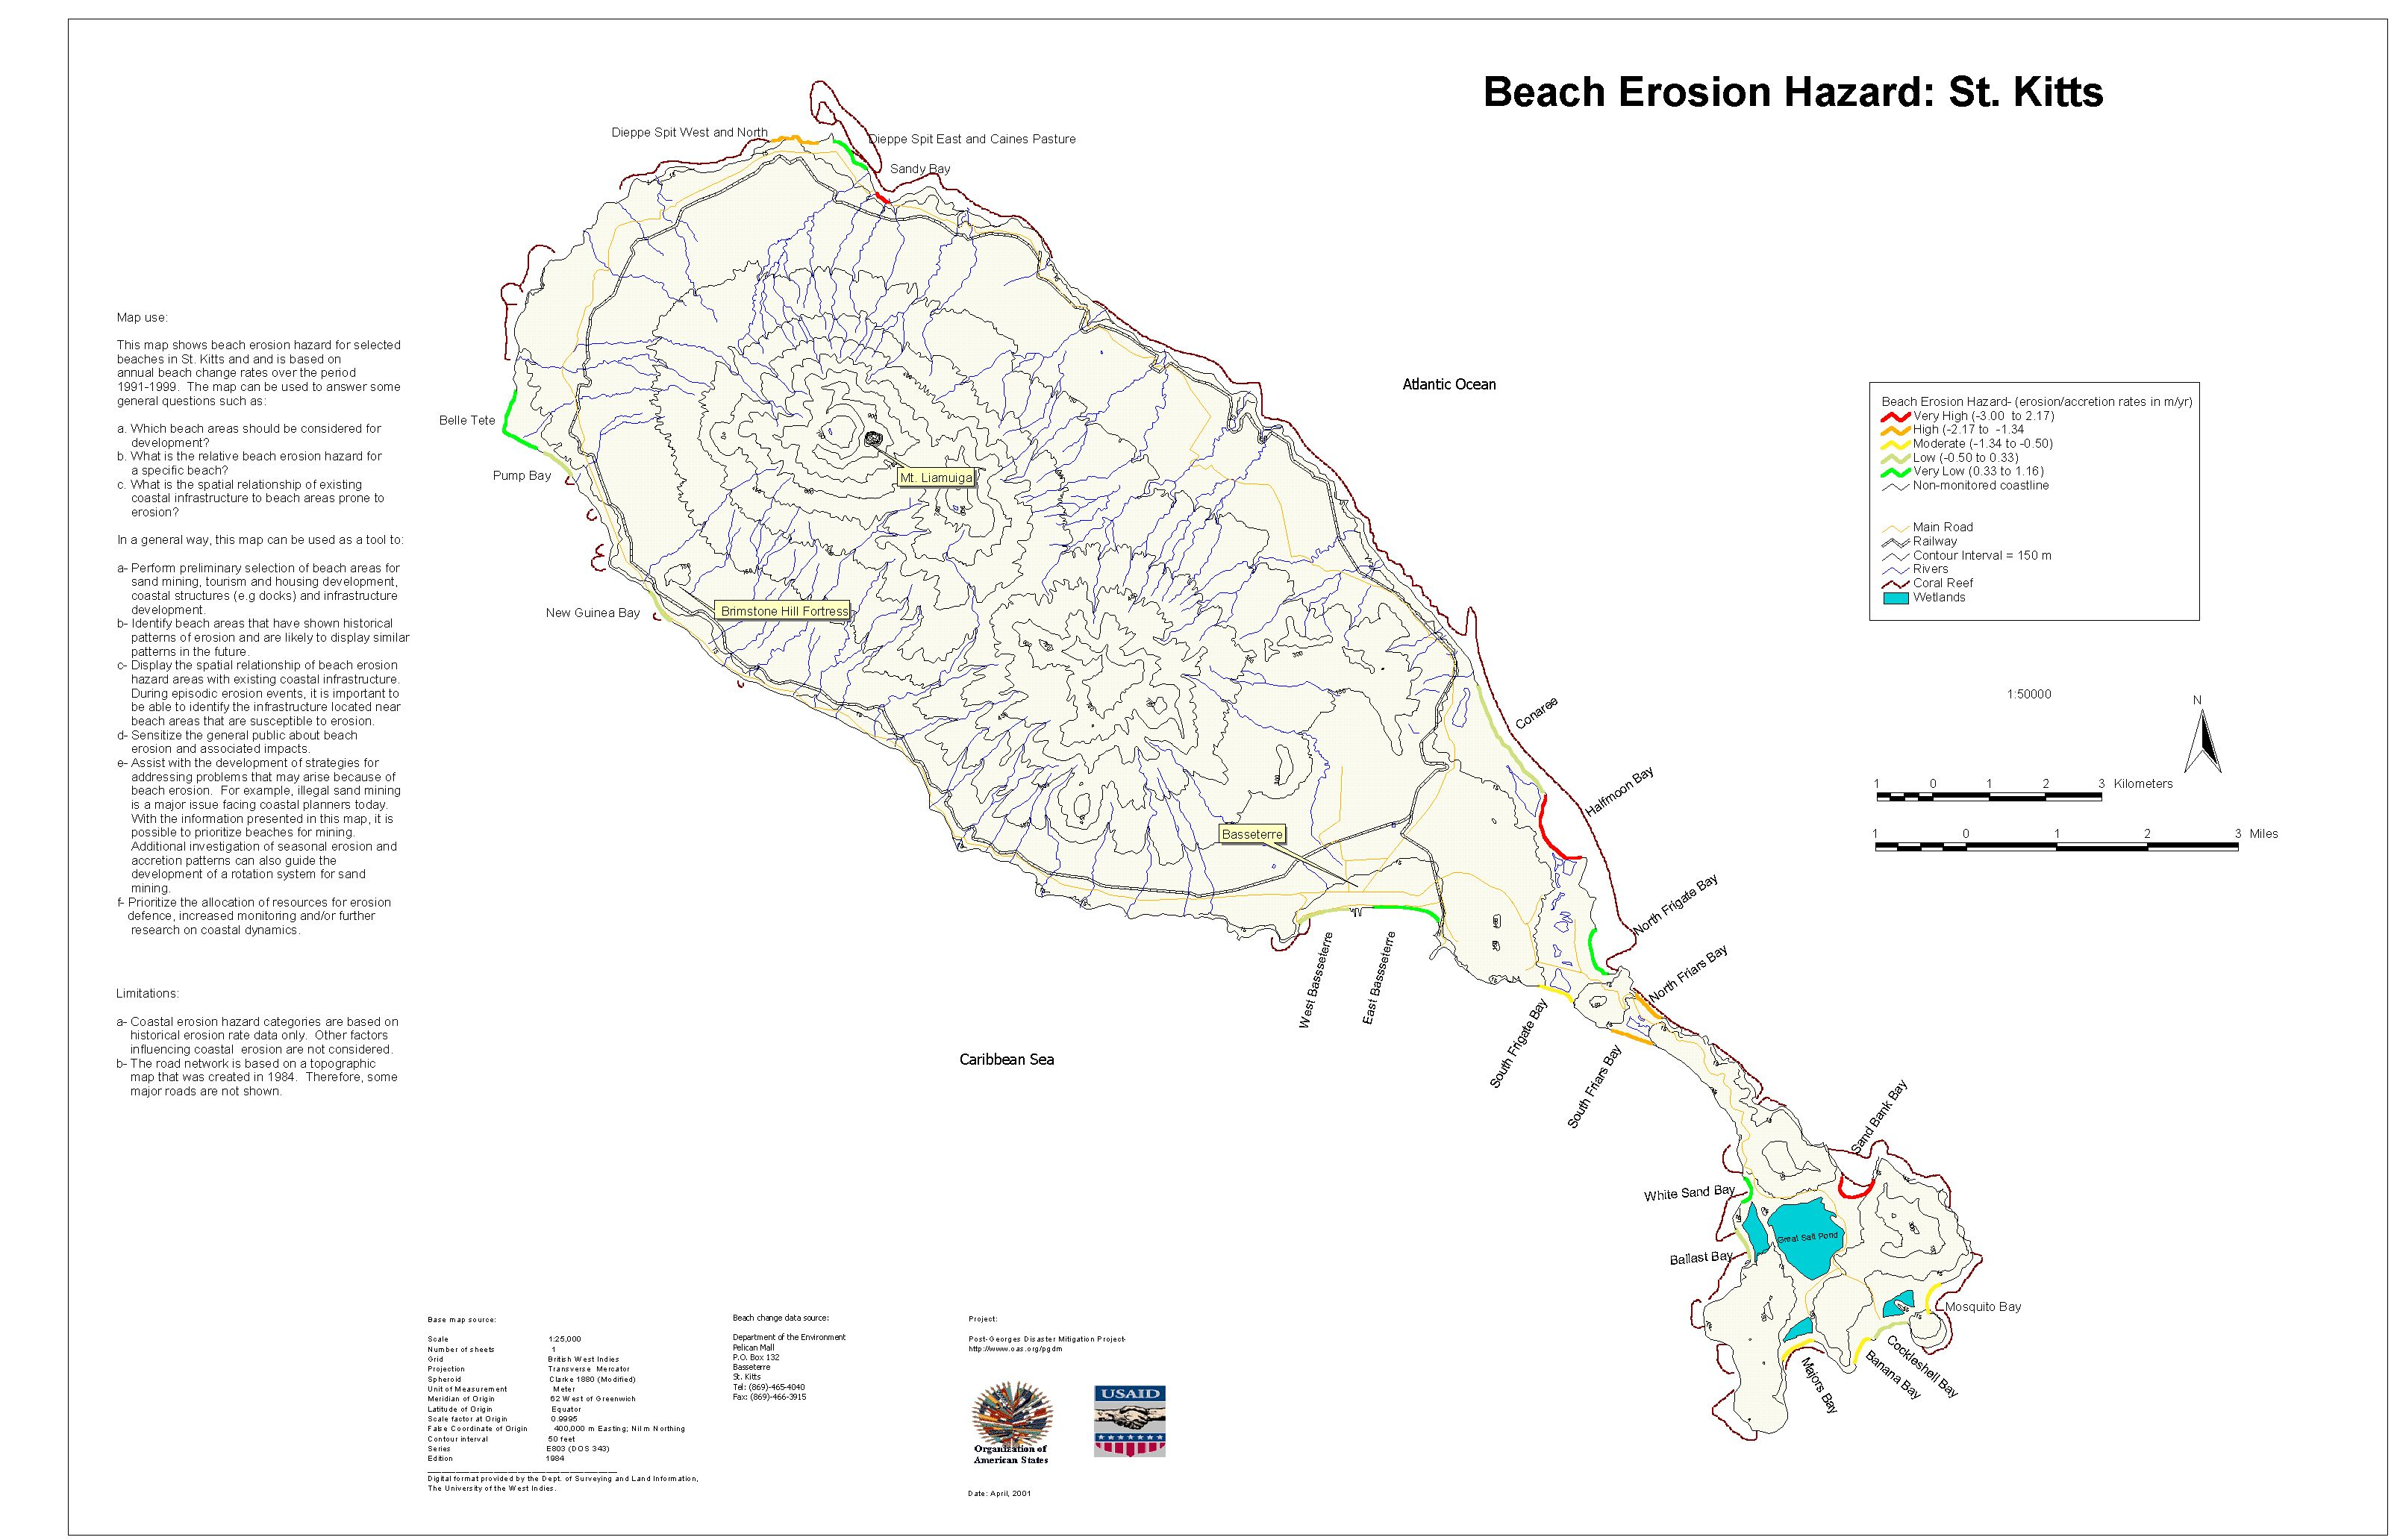 Pgdm Beach Erosion Hazard Map